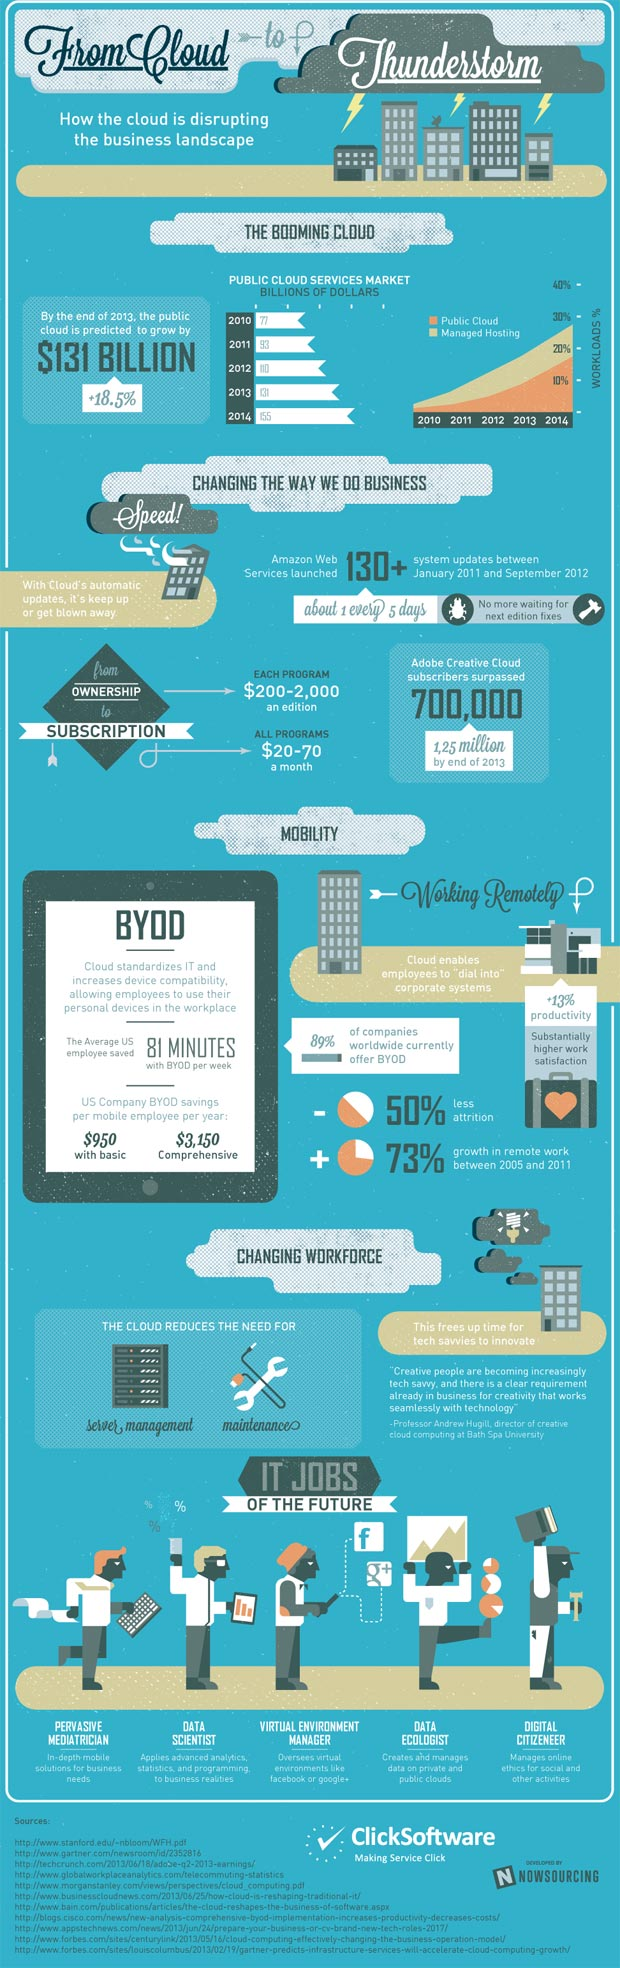 cloud-disruption-infographic